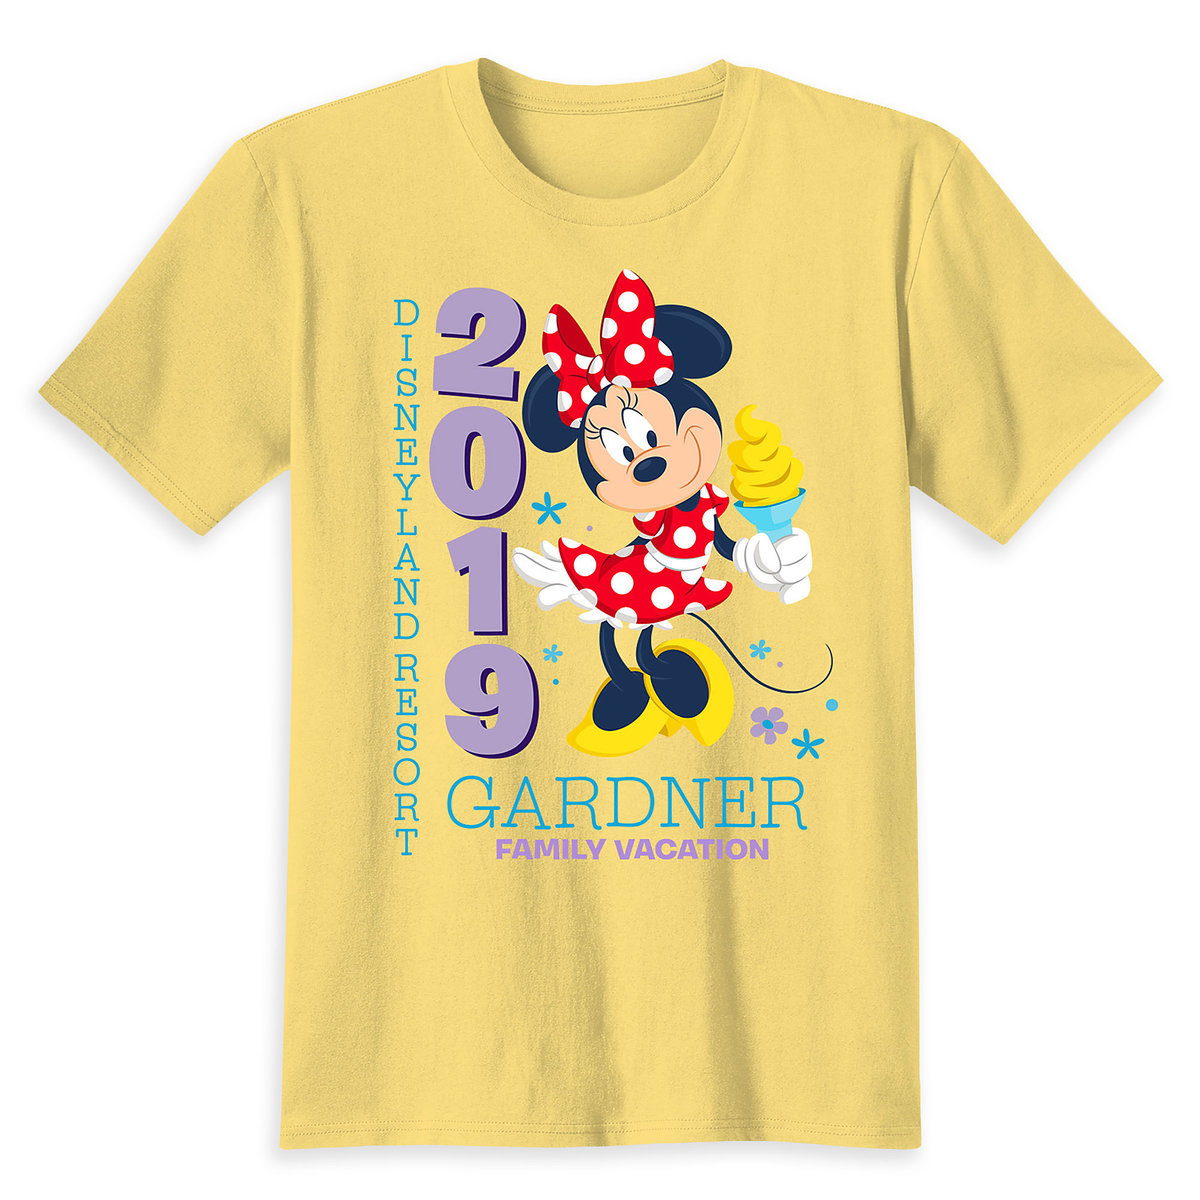 7ad765035 Minnie Mouse Family Vacation T-Shirt for Kids - Disneyland 2019 - Customized